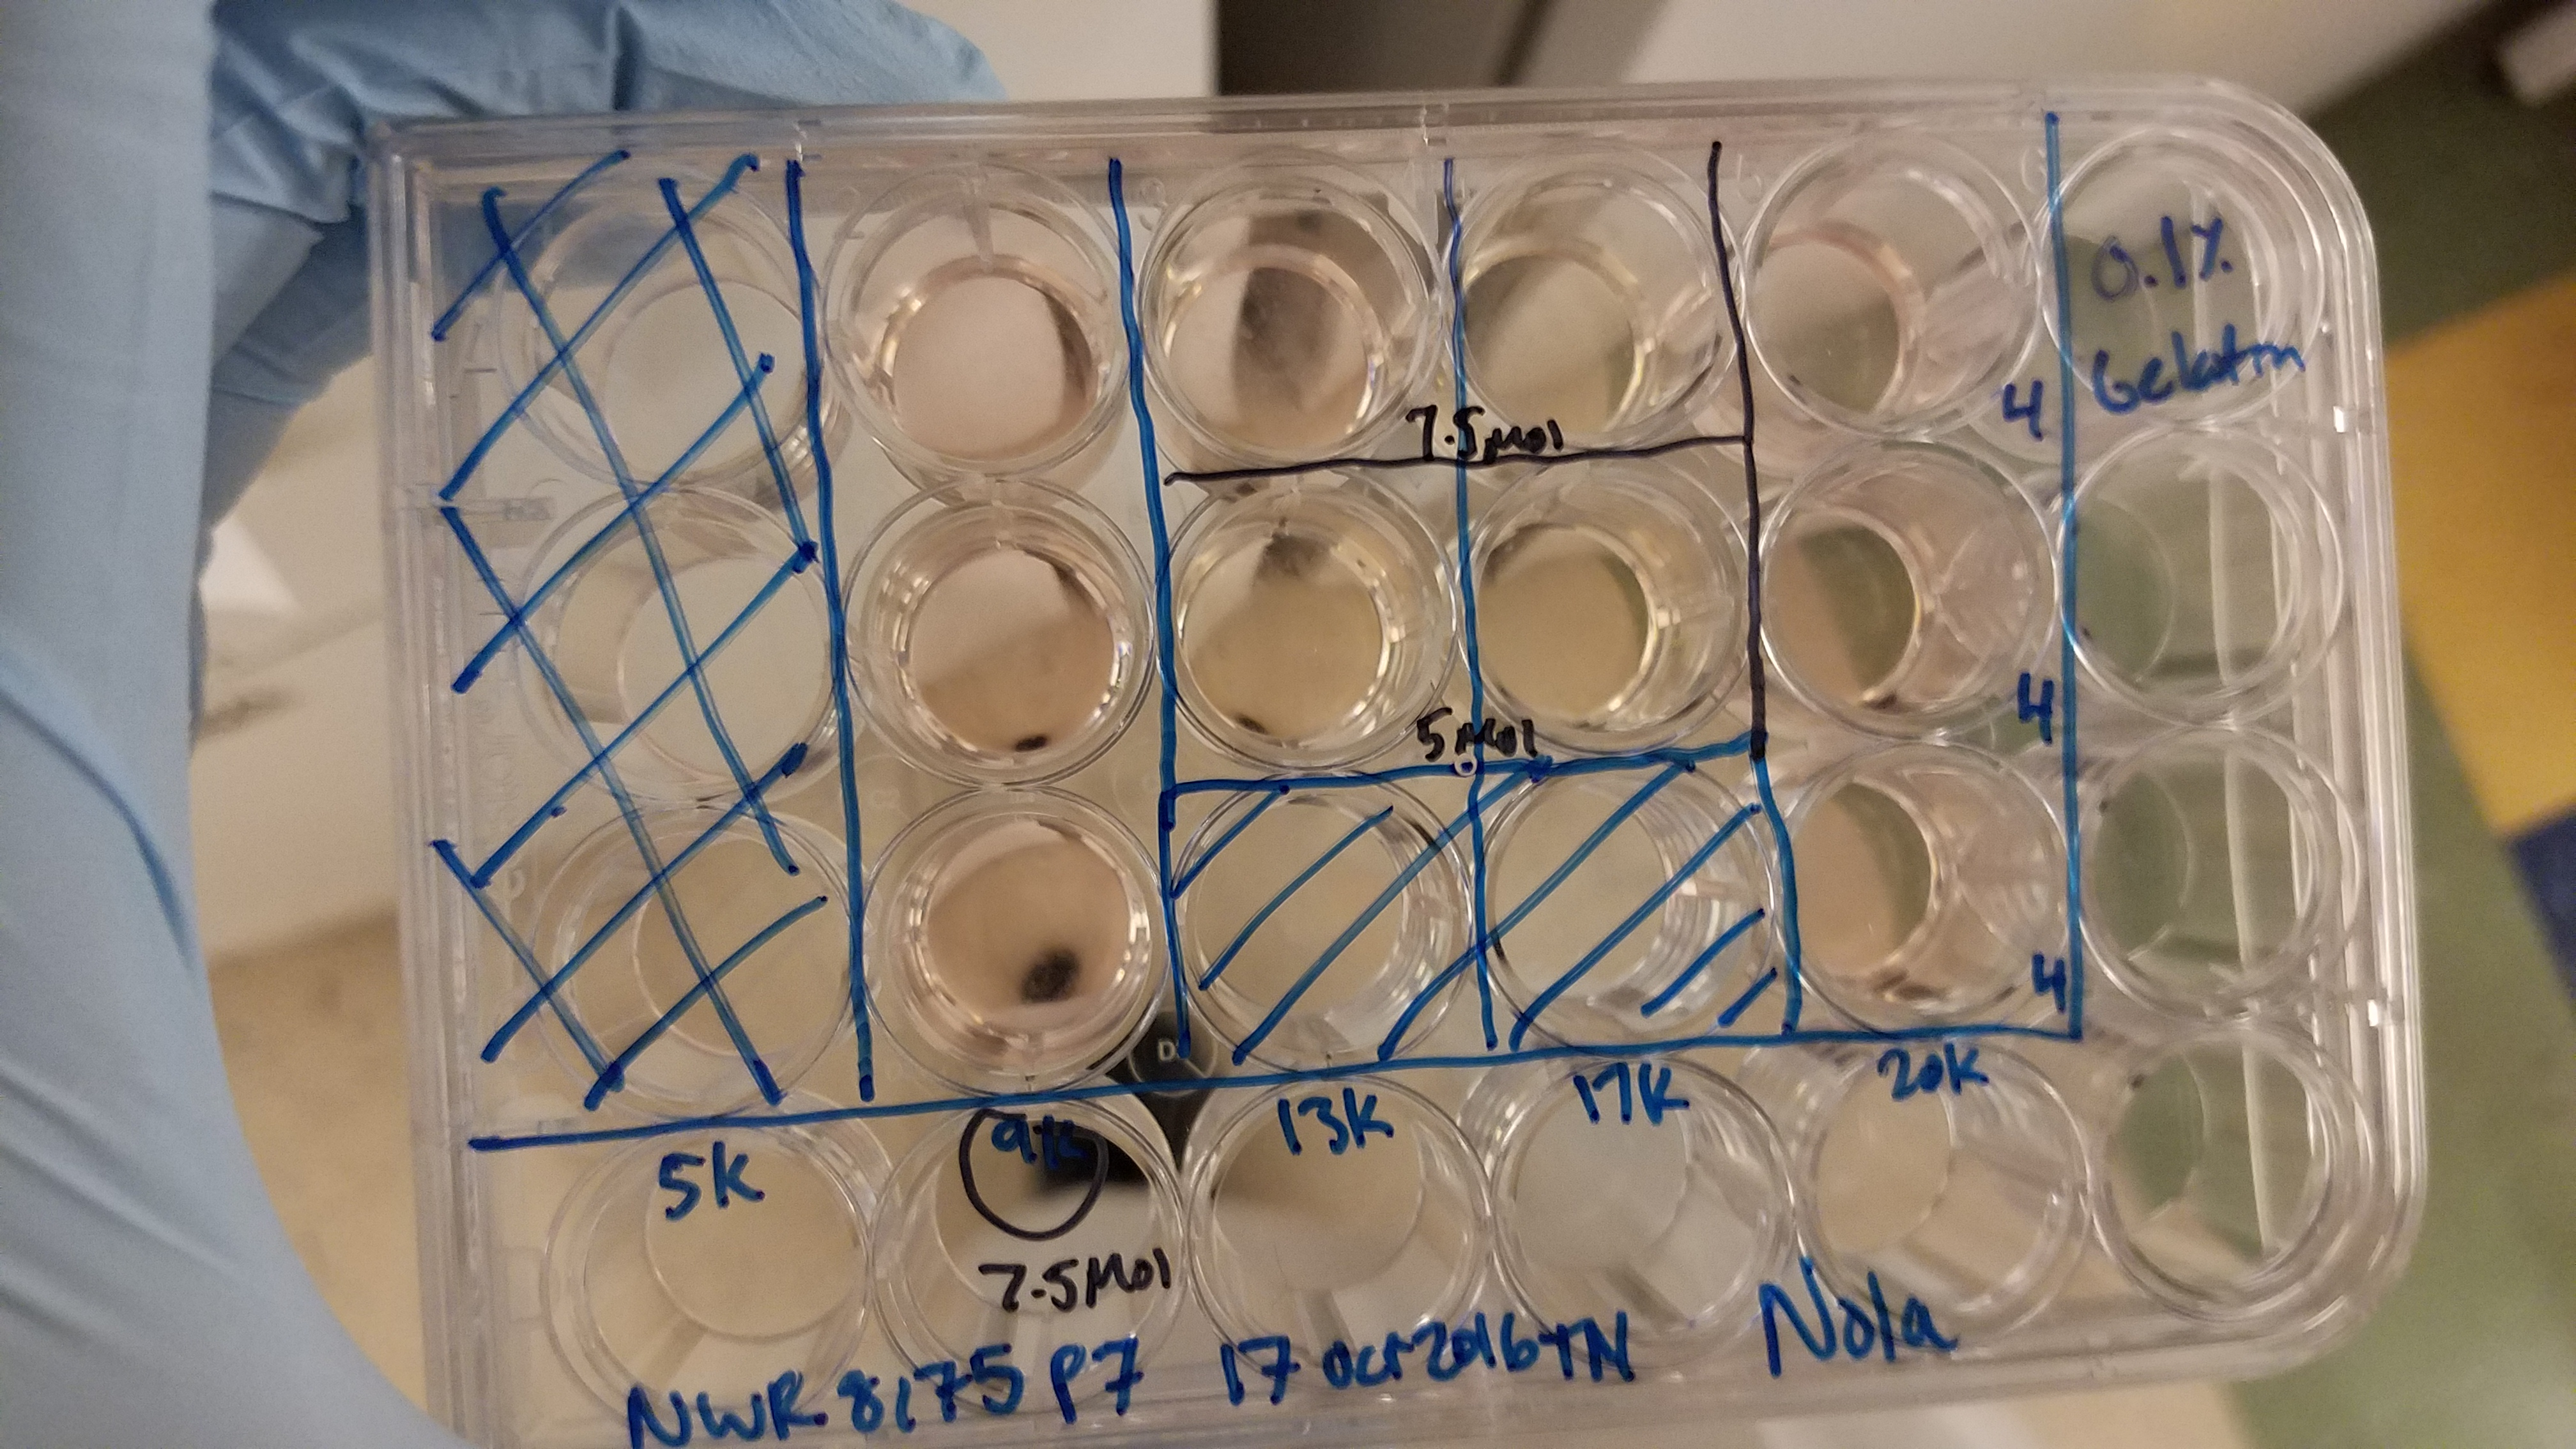 The tissue culture plate contains Nola's (pictured above) fibroblasts (skin cells) that we are turning into stem cells using a method called reprogramming. It's not the most glamorous photo but it does encompass what we are doing in the lab.